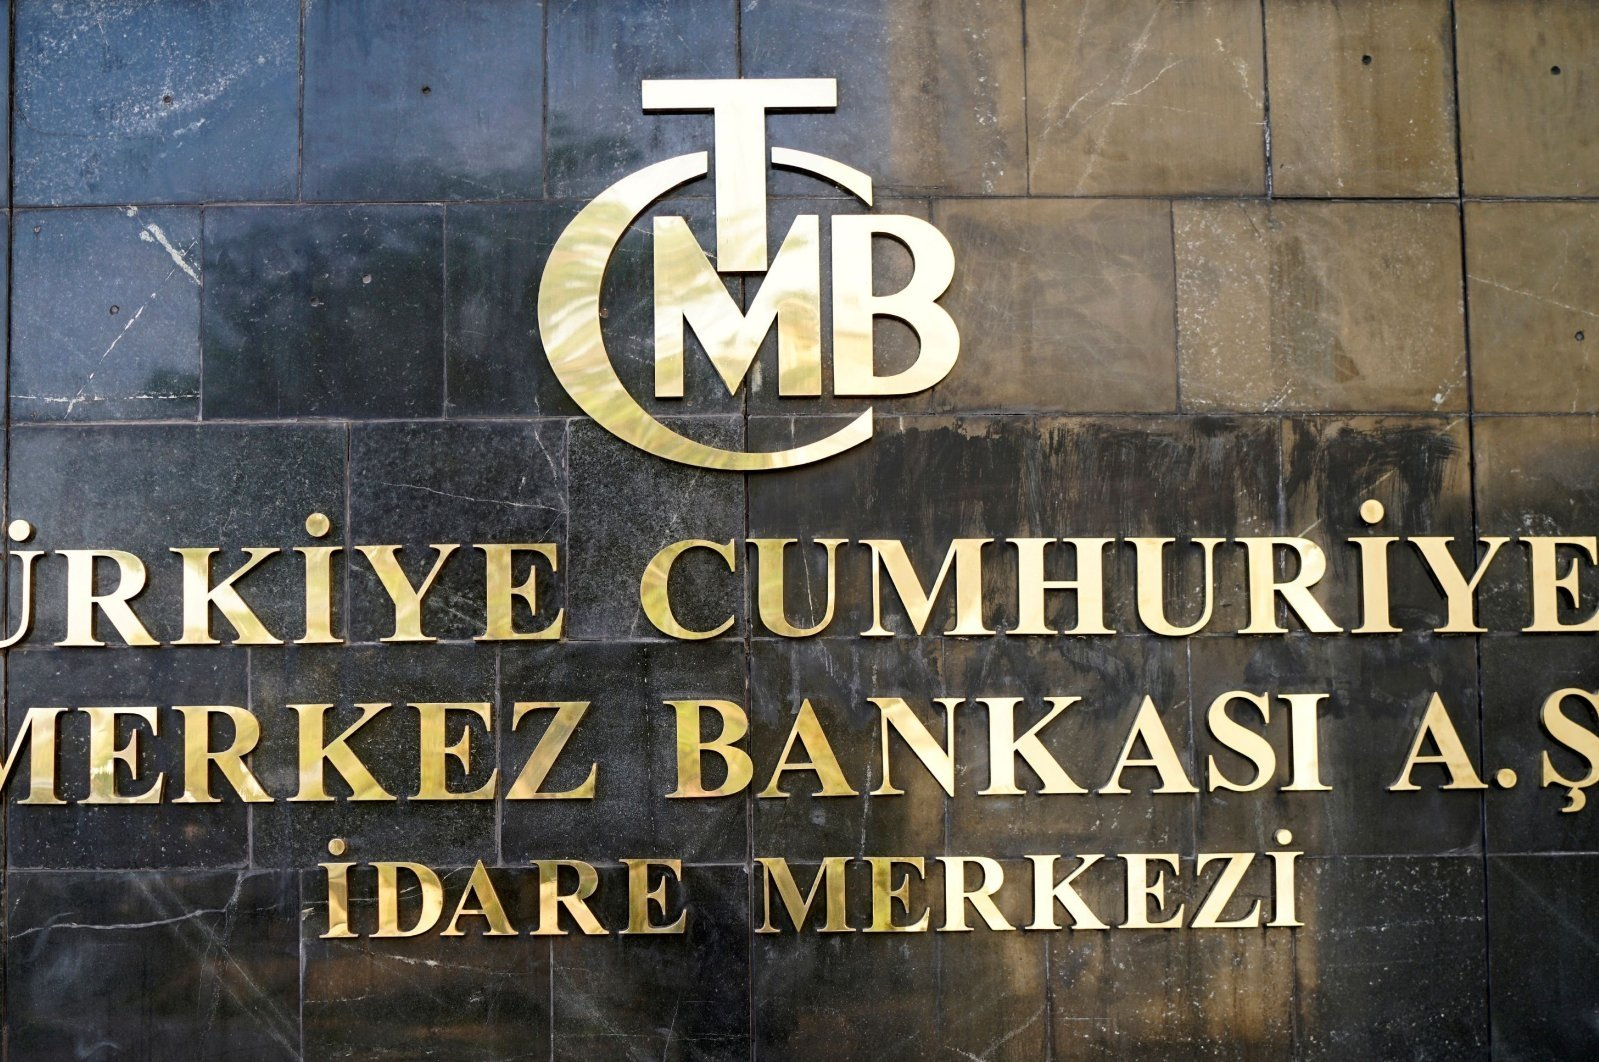 A logo of the Central Bank of the Republic of Turkey (CBRT) is pictured at the entrance of the bank's headquarters in the capital Ankara, Turkey, April 19, 2015. (Reuters Photo)